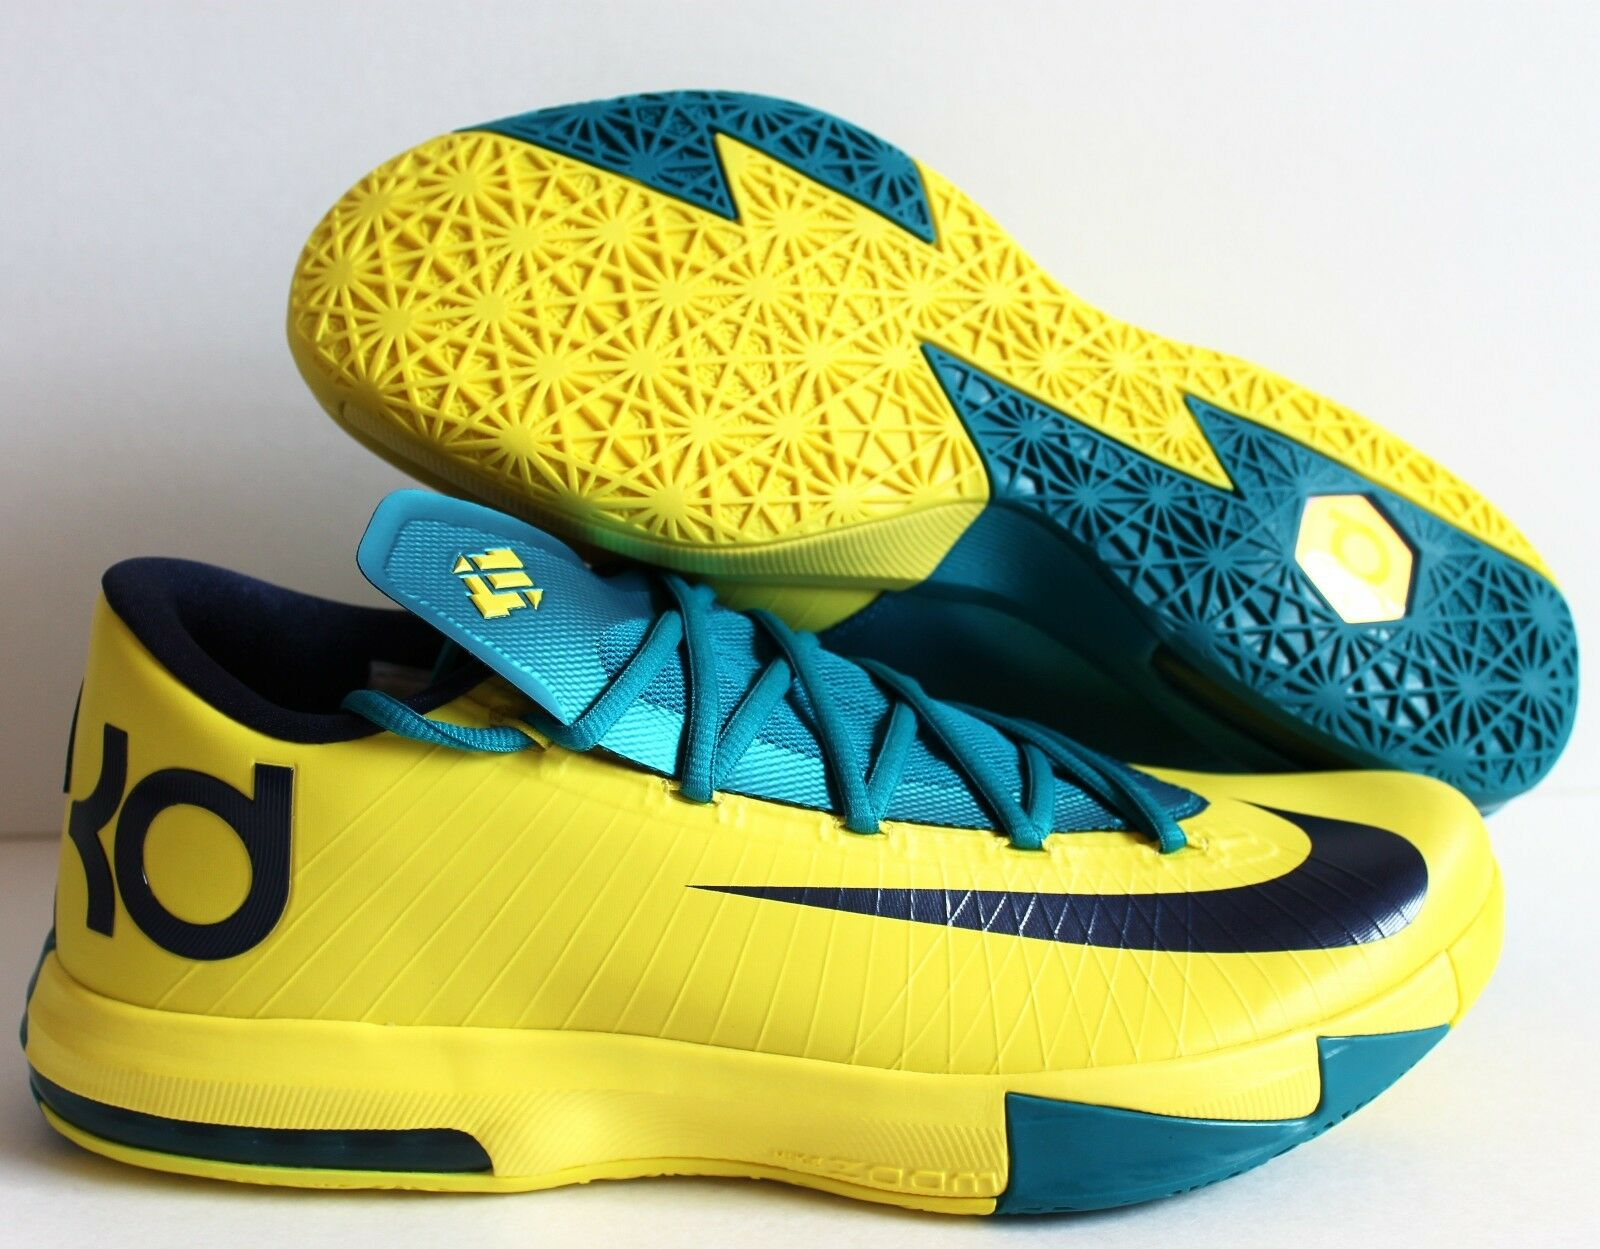 NIKE KD VI 6 SONIC YELLOW-MIDNIGHT NAVY BLUE-TROPICAL TEAL Price reduction The latest discount shoes for men and women